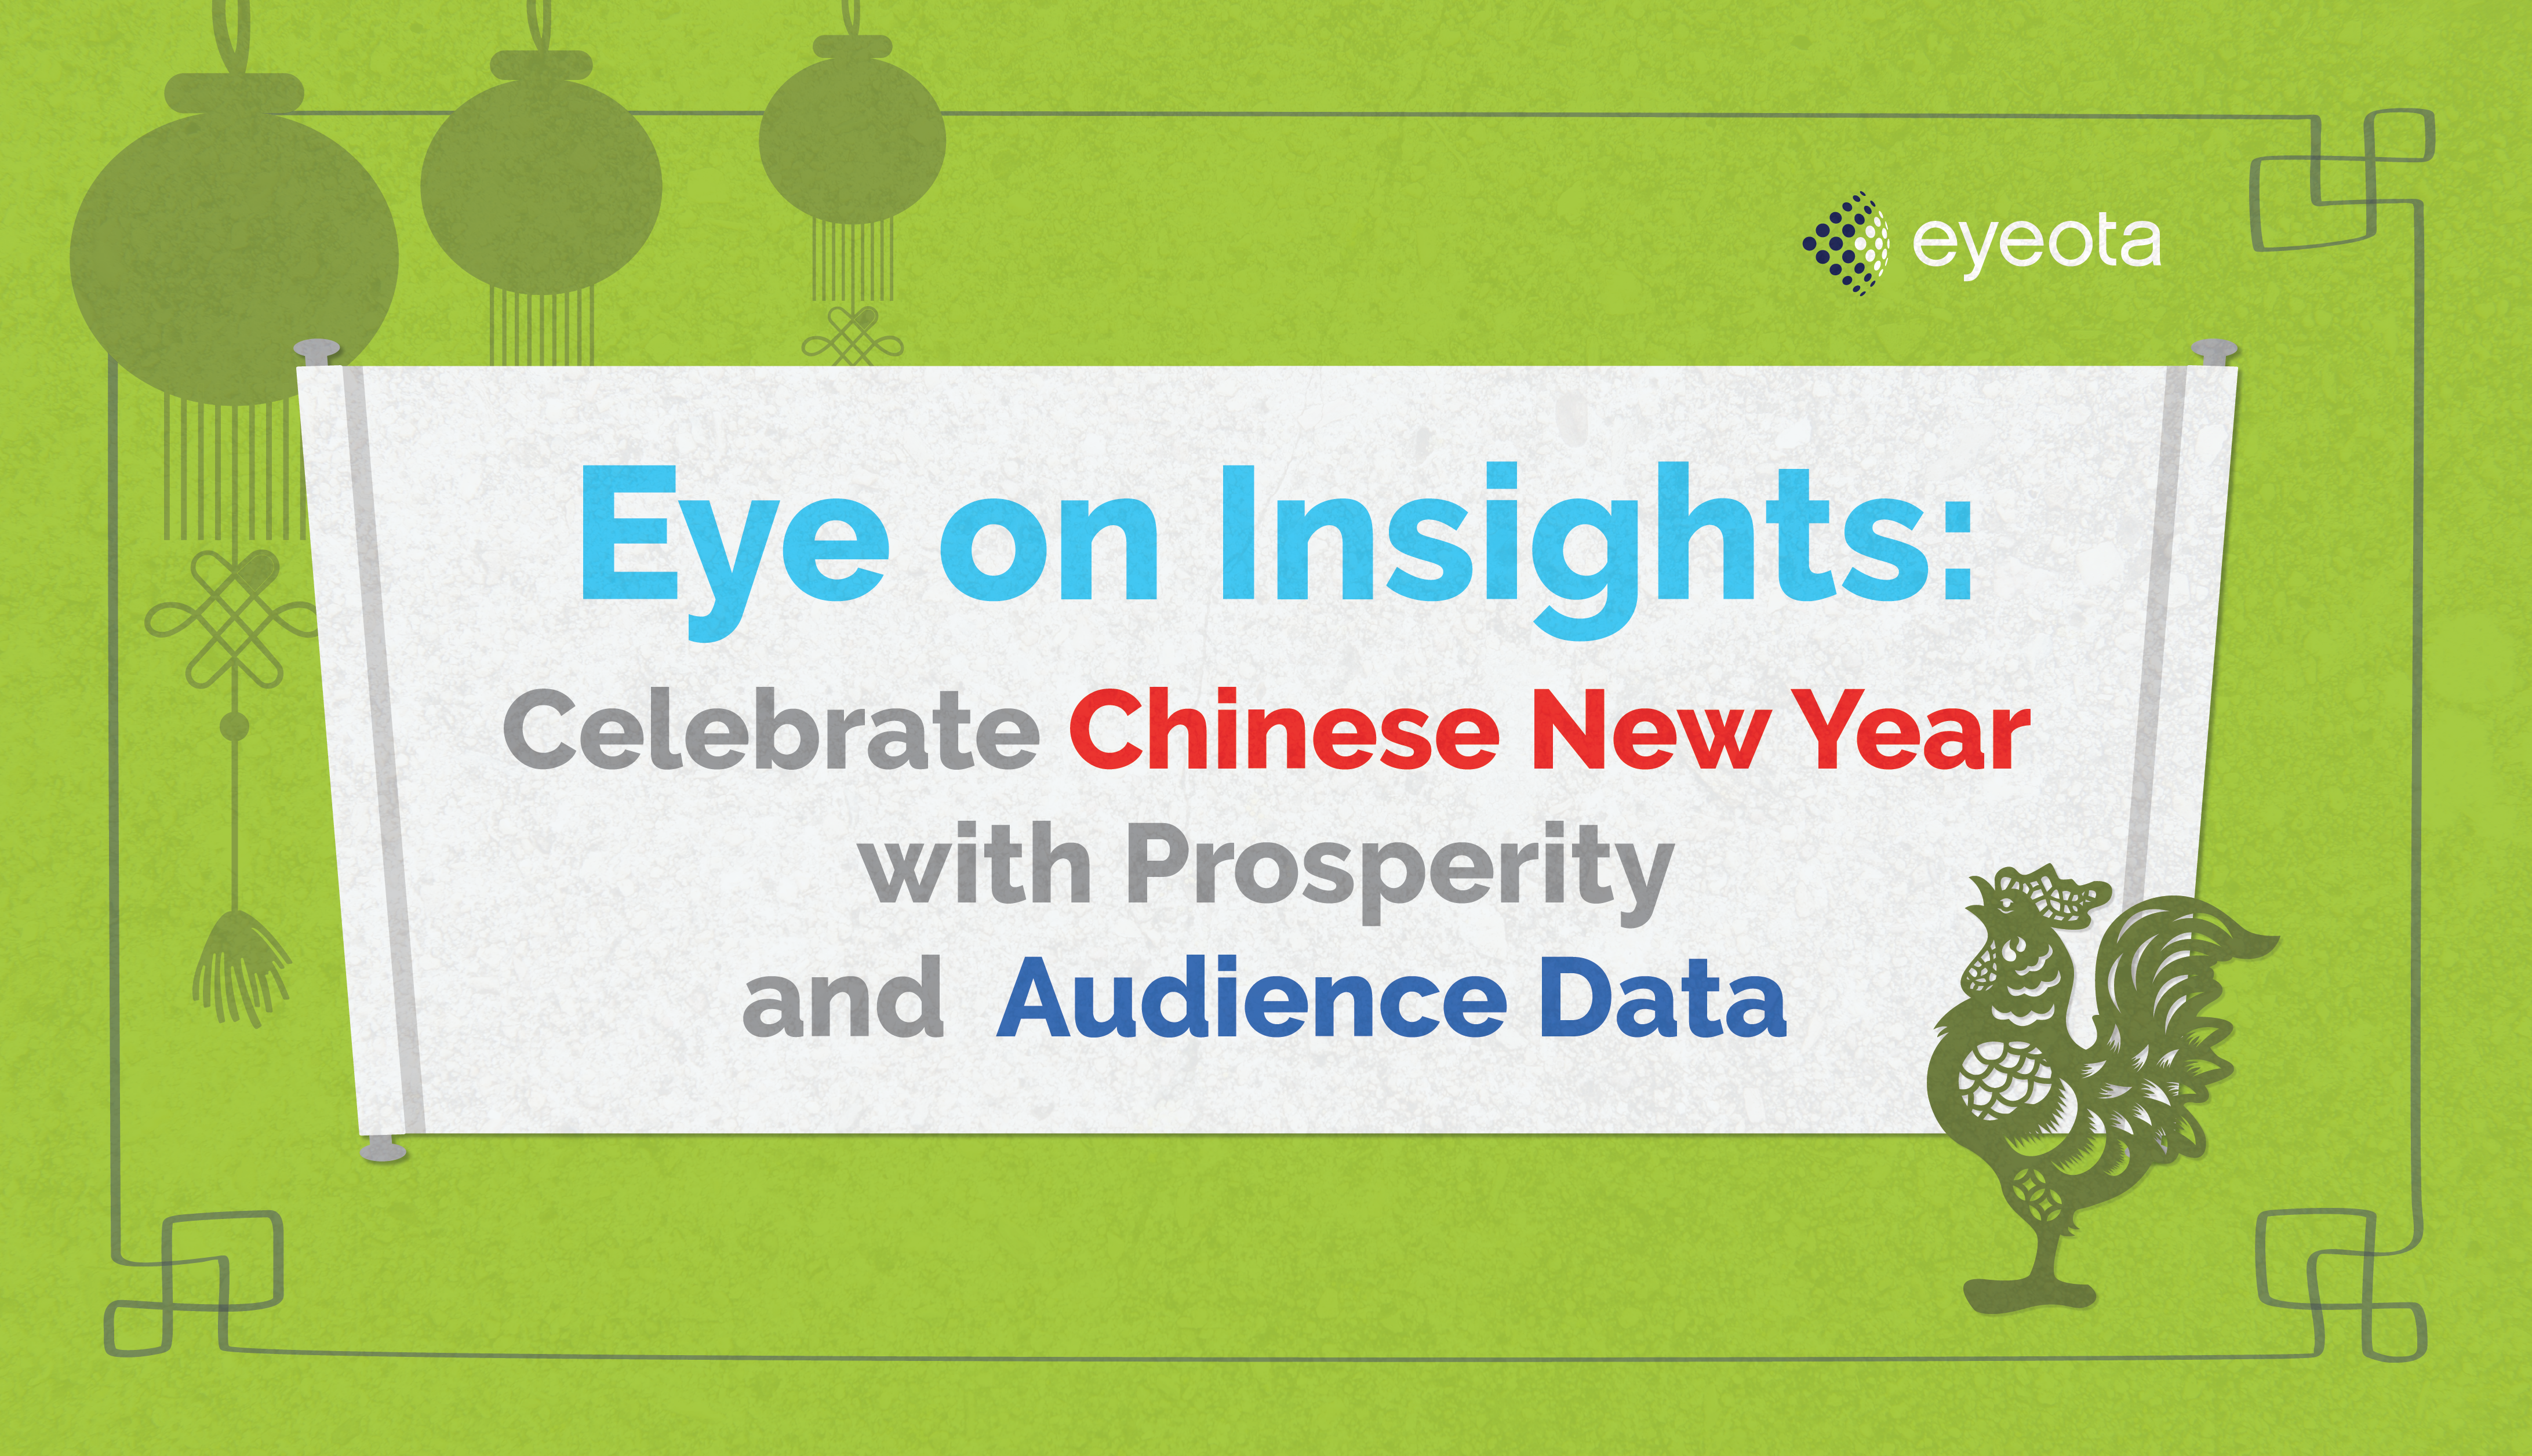 Eye On Insights: Celebrate Chinese New Year with Prosperity and Audience Data